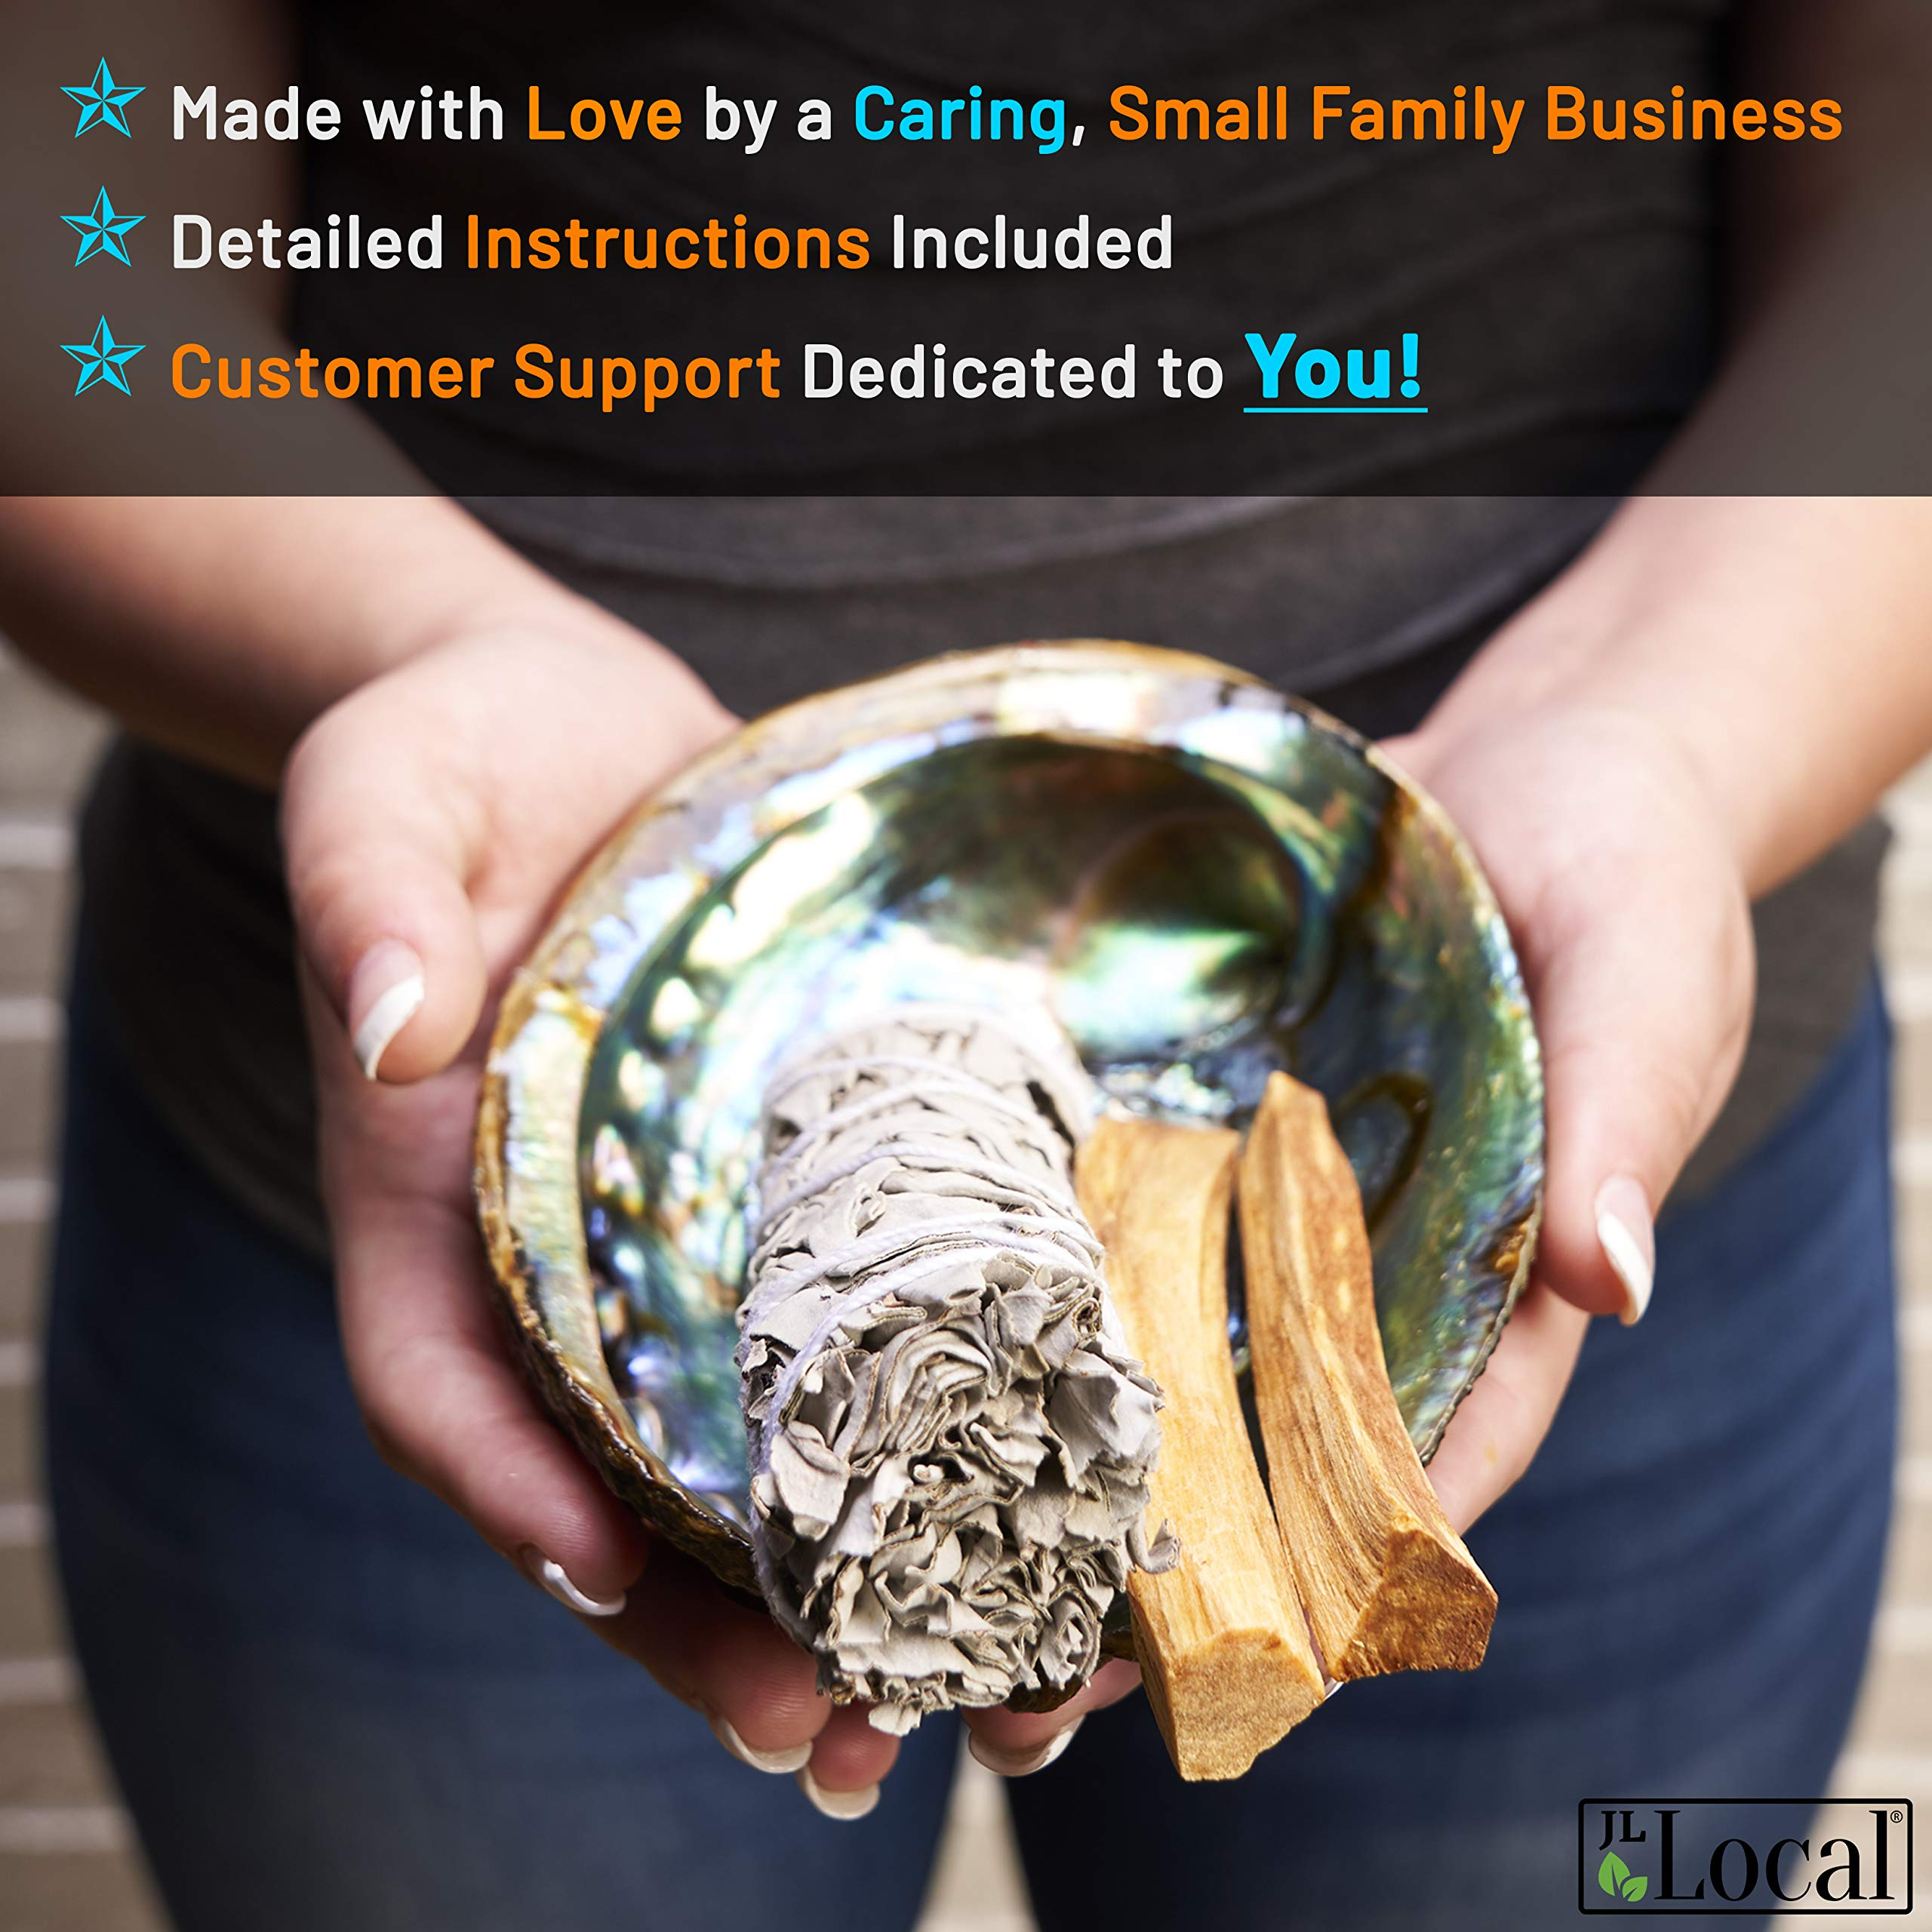 JL Local Smudge Kit - Sage, Palo Santo, Abalone Shell, Feather + More! Yoga, Meditating, Purify, Cleanse by JL Local (Image #5)